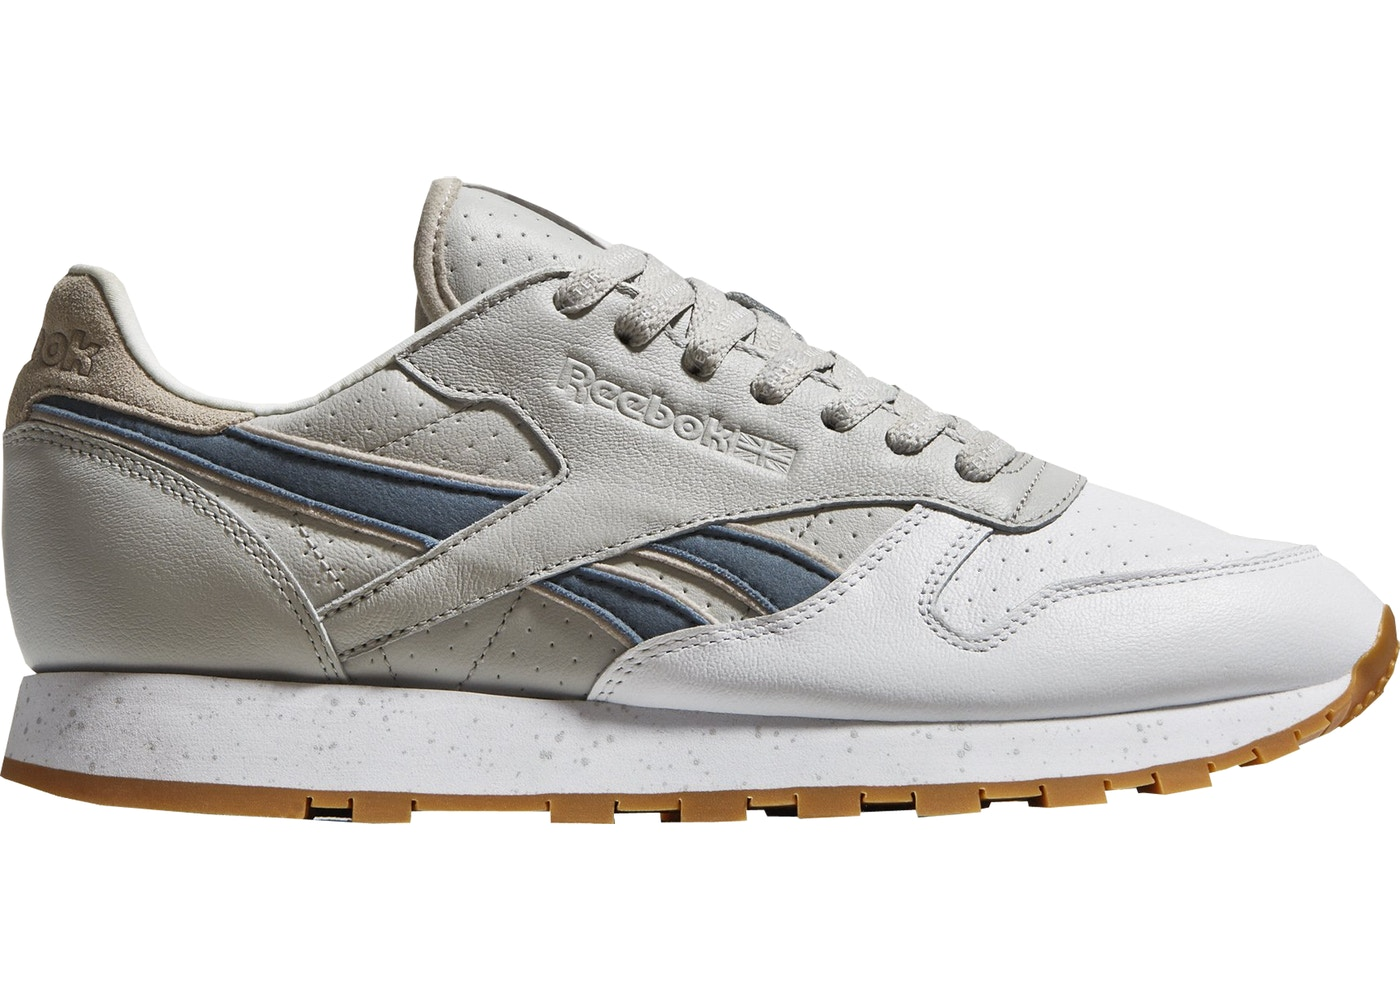 6df69c13fe5 Reebok Classic Leather Extra Butter x Urban Outfitters - CN2022